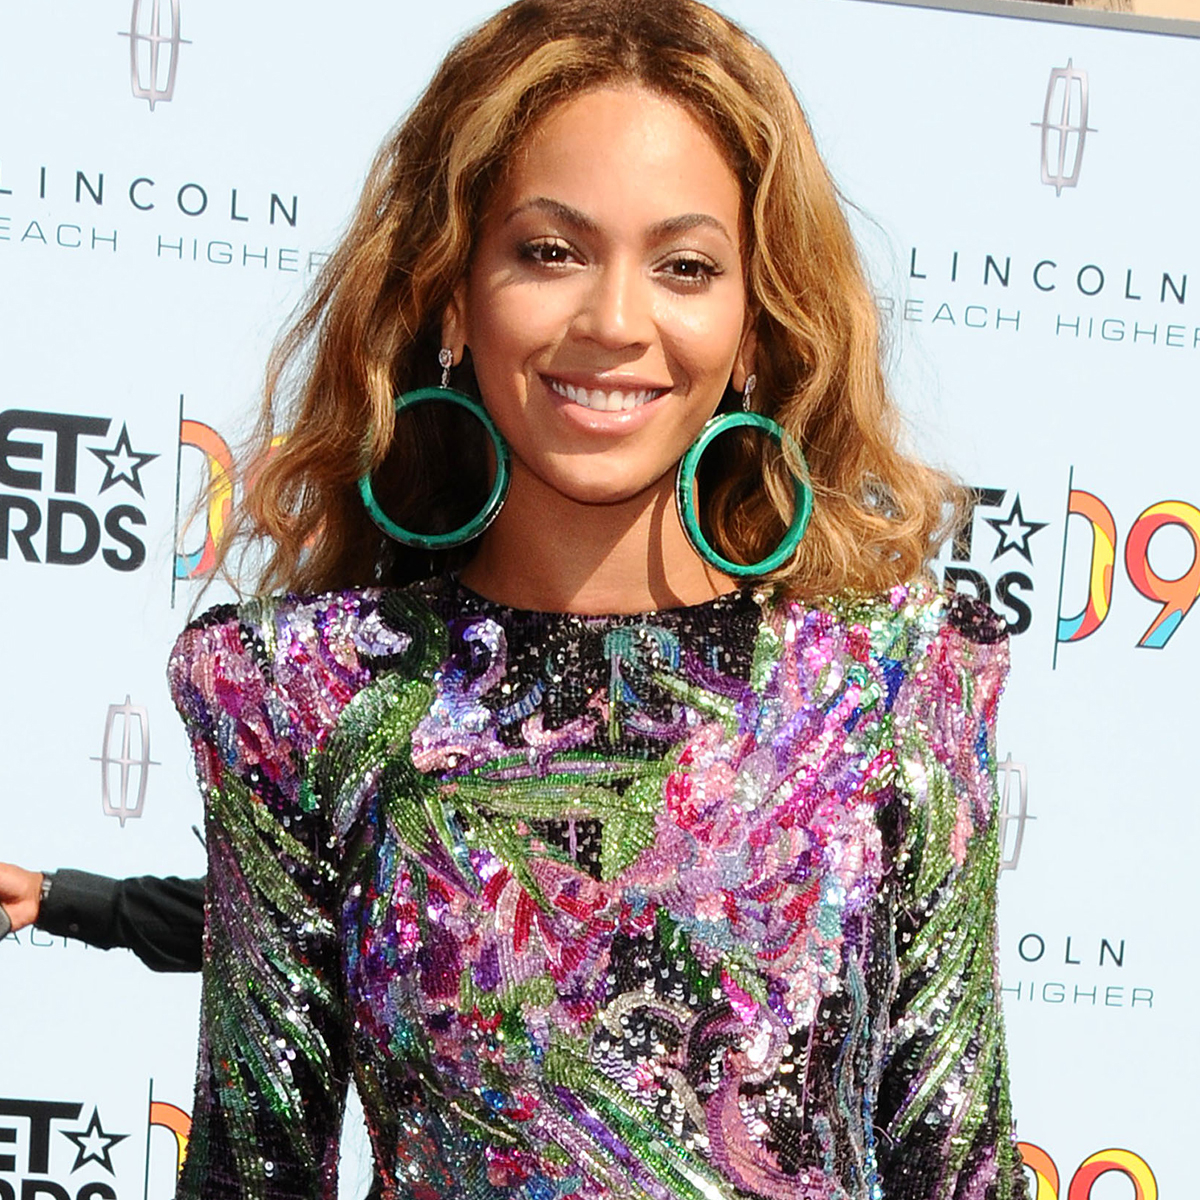 The Most Unforgettable Red Carpet Moments From BET Awards - E! Online